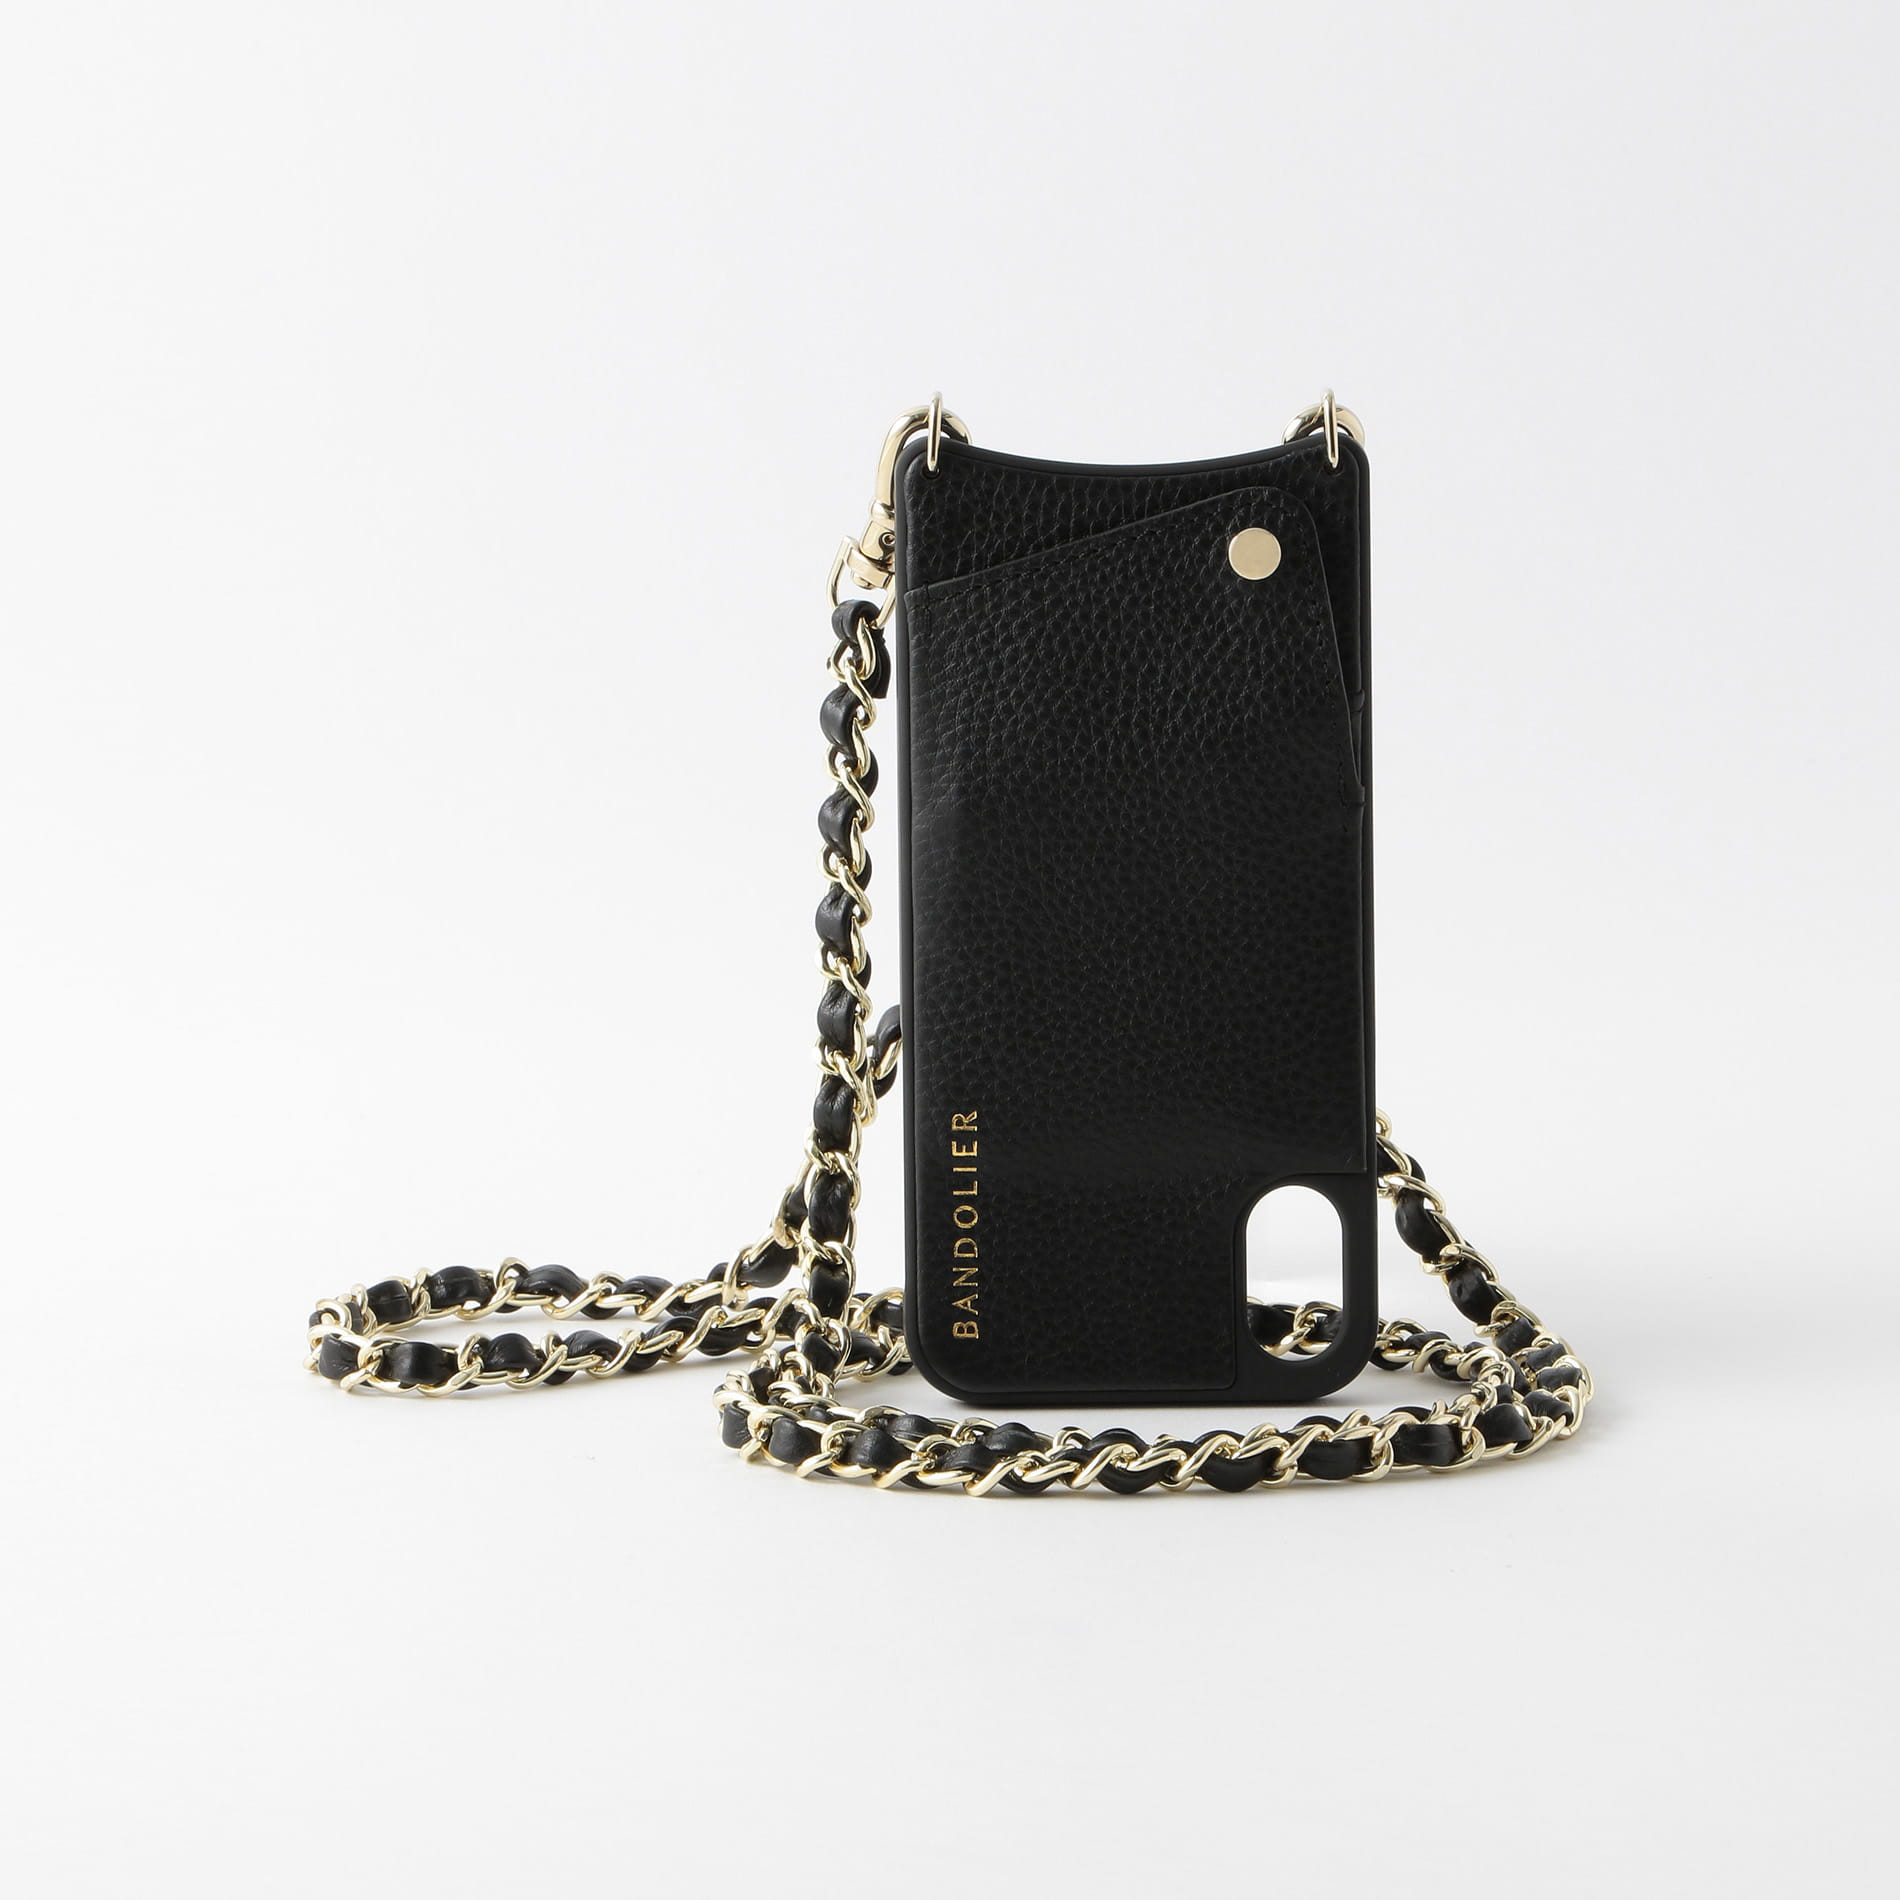 【BANDOLIER】LUCY GOLD X/XS